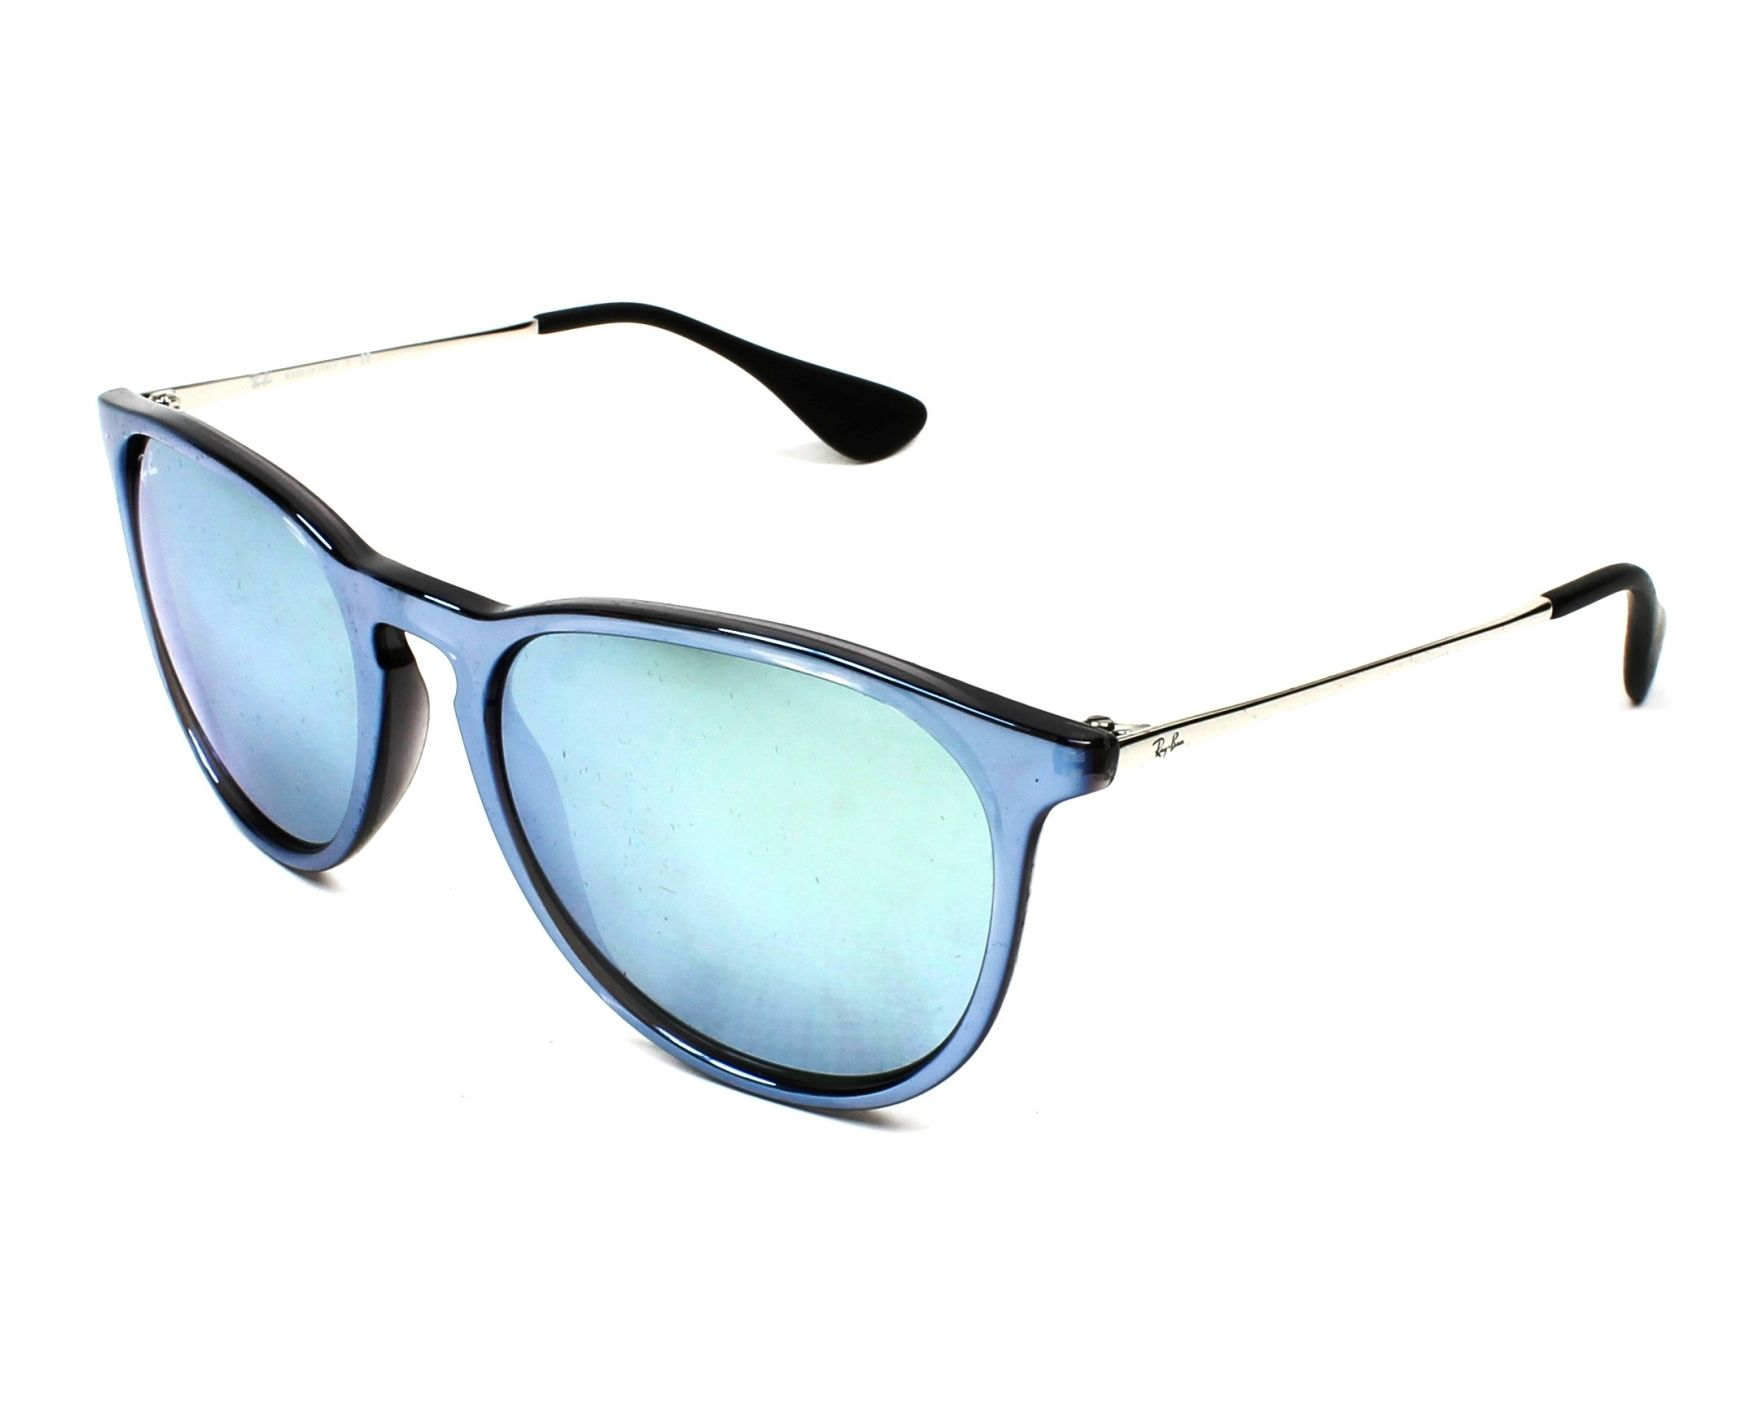 Sunglasses Ray-Ban RB-4171 631930 54-17 Blue Silver profile view 48103b009c